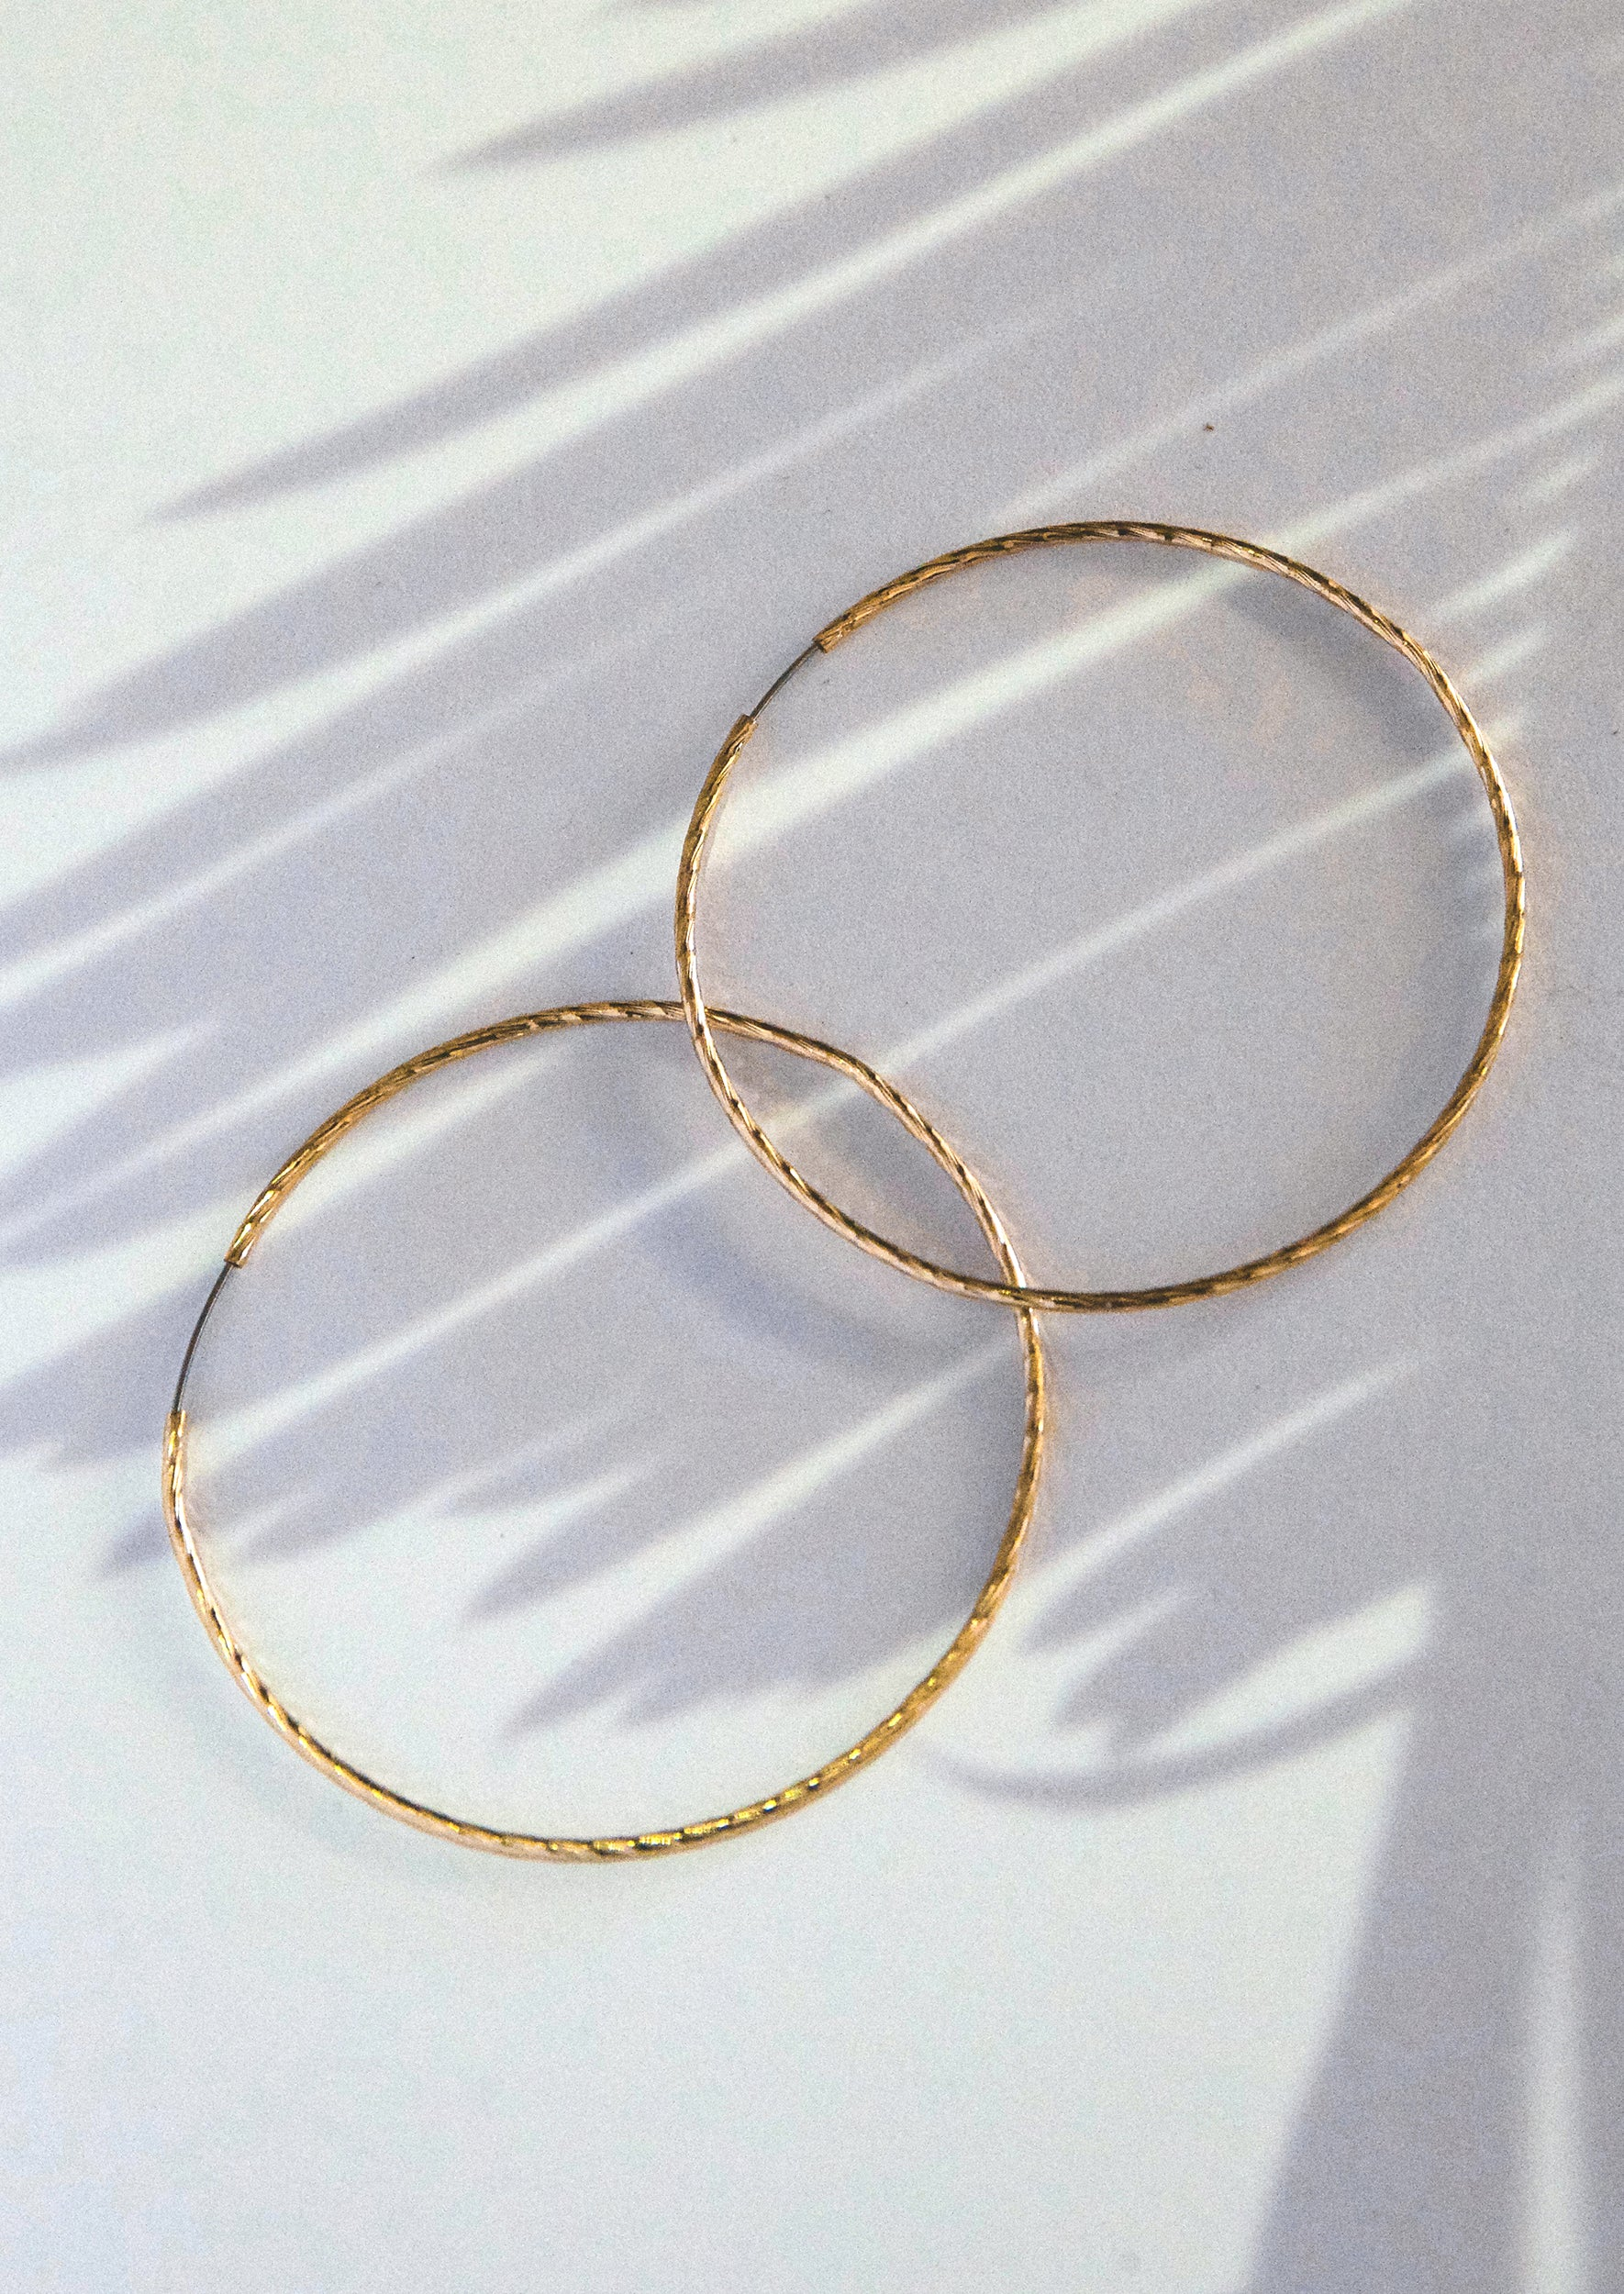 FACTOR HOOPS - Jules Smith - 14K Gold Plated - Boho Jewelry